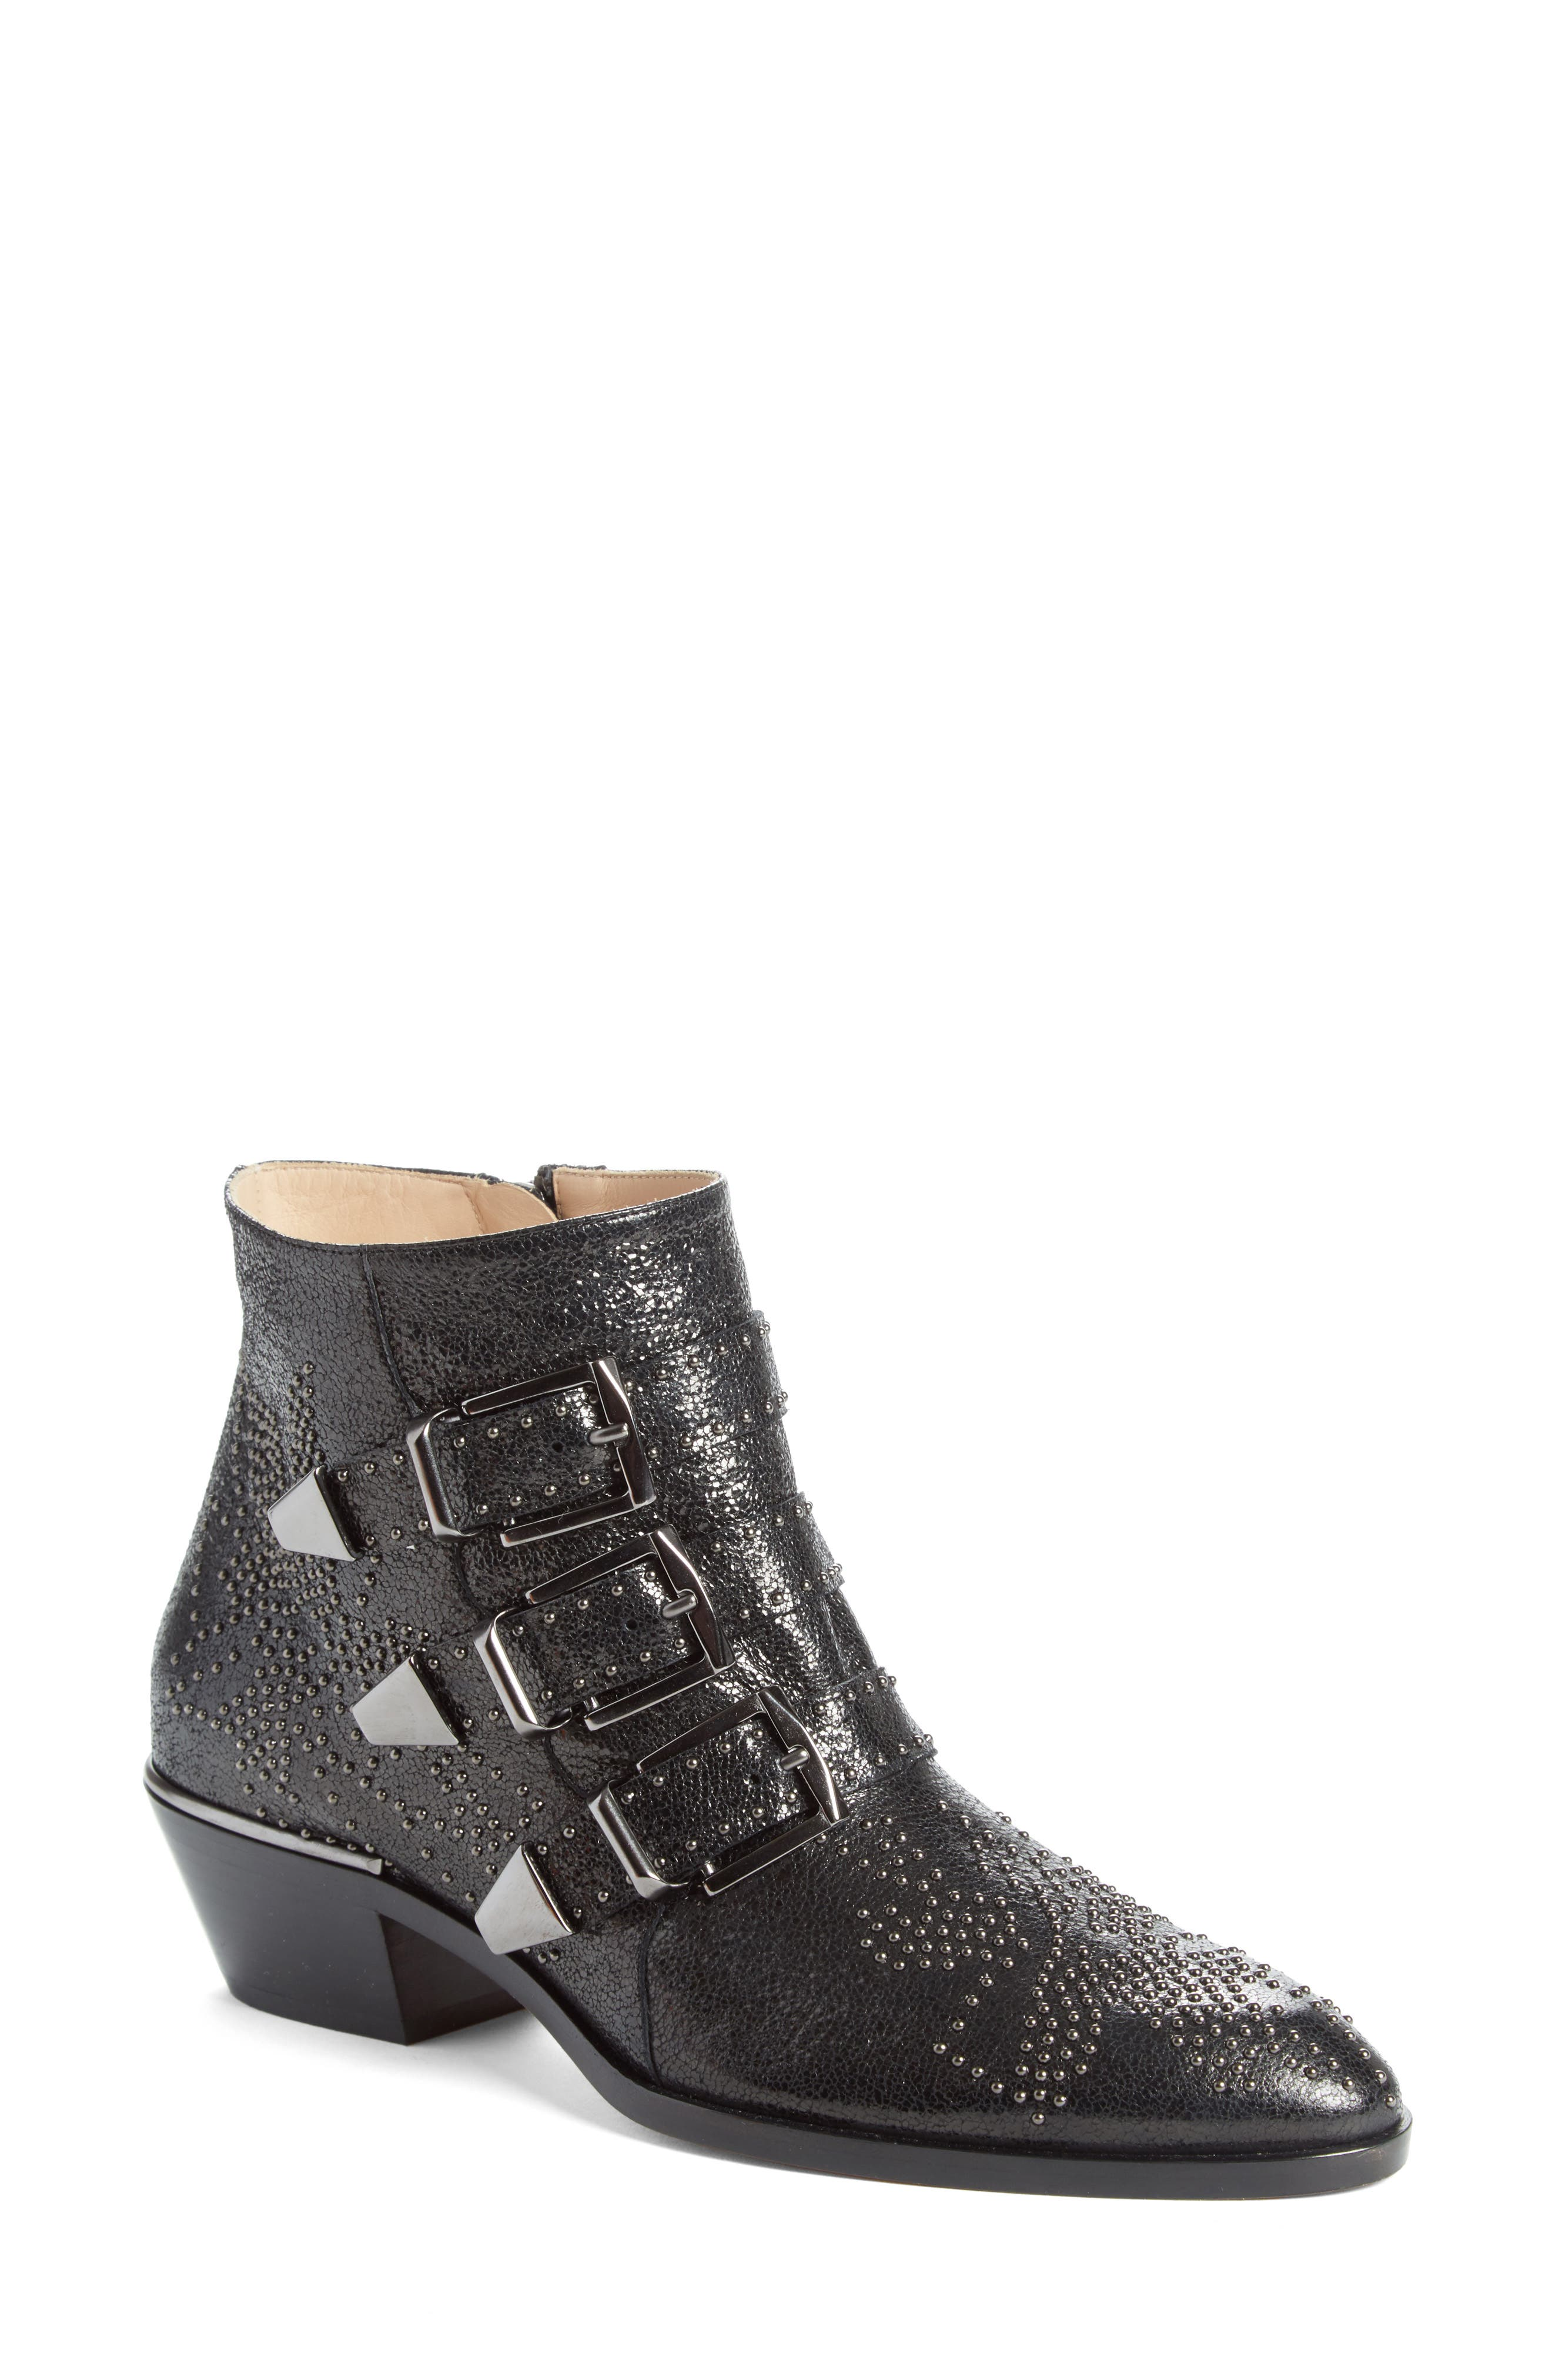 Alternate Image 1 Selected - Chloé Susanna Studded Bootie (Women)